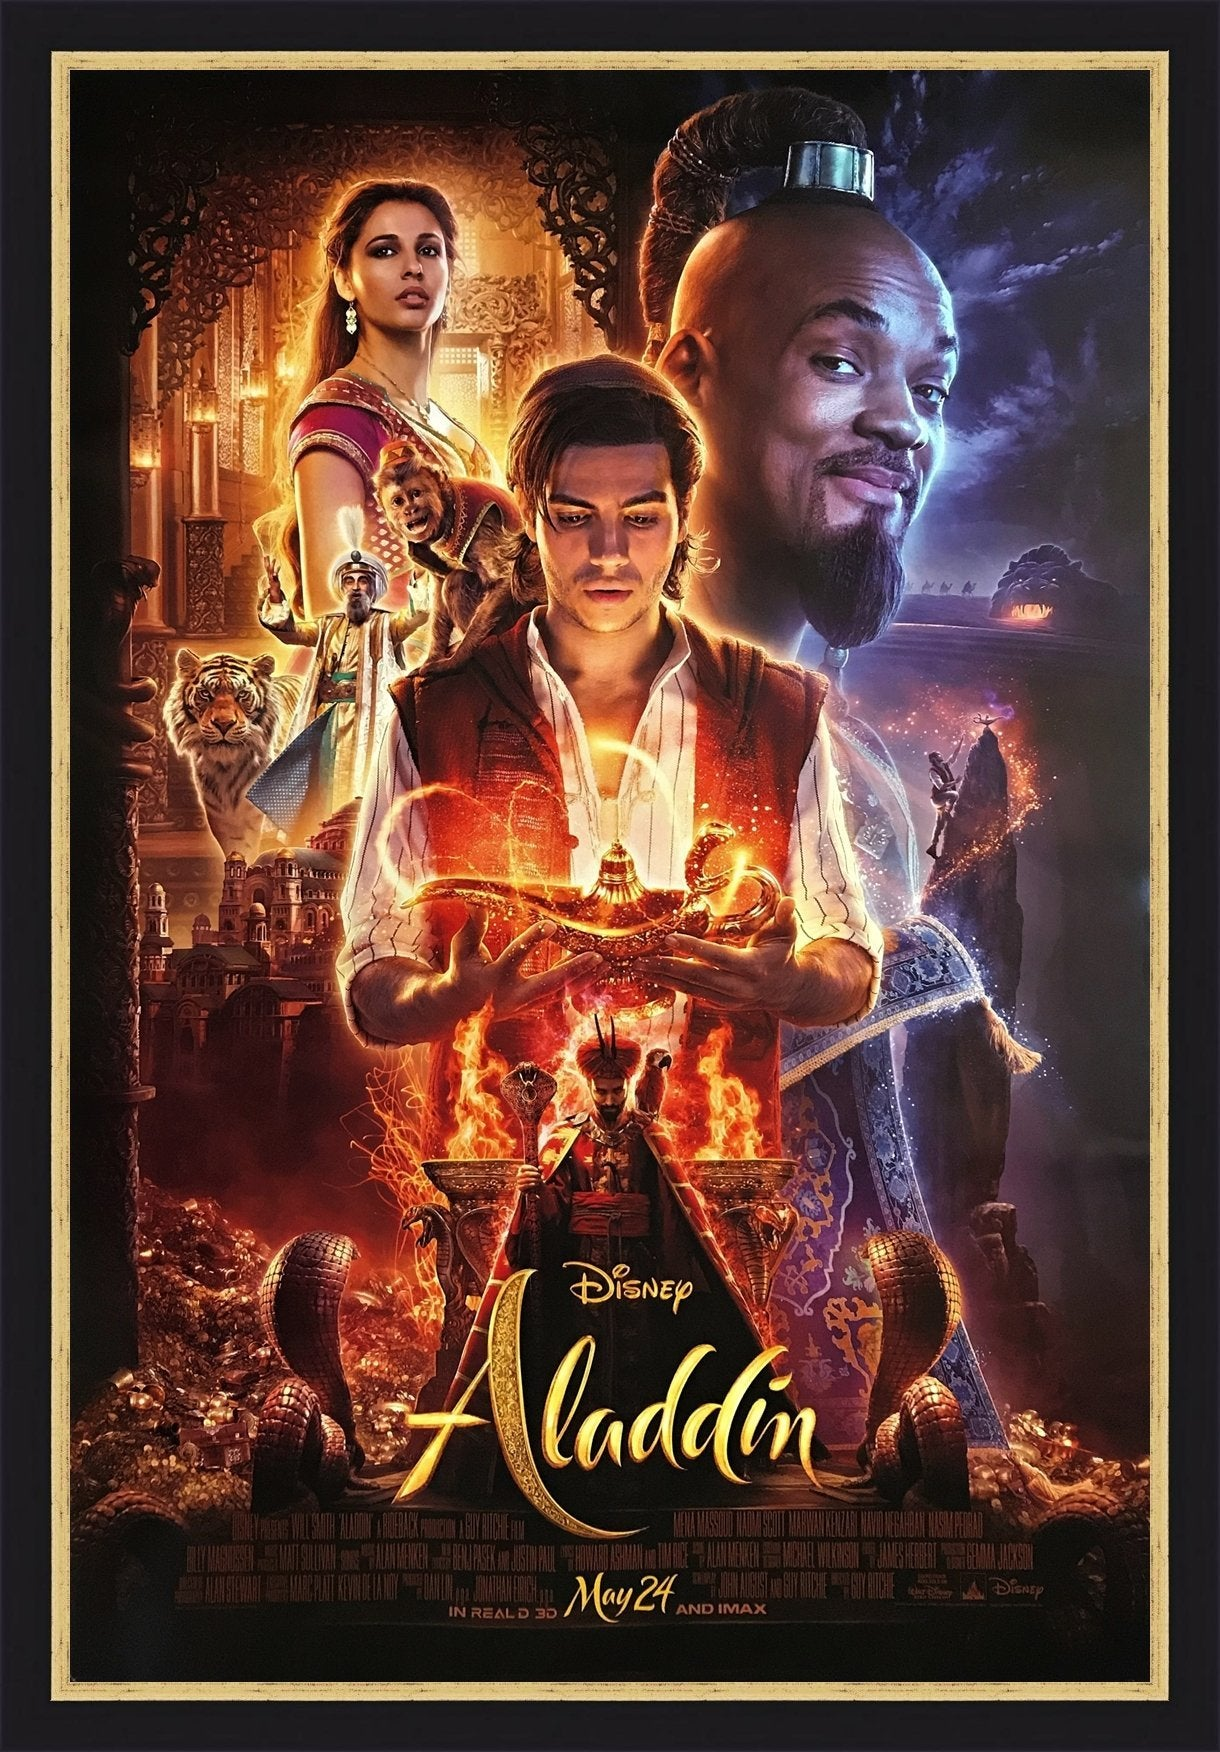 An original movie poster for the 2019 Disney film Aladdin